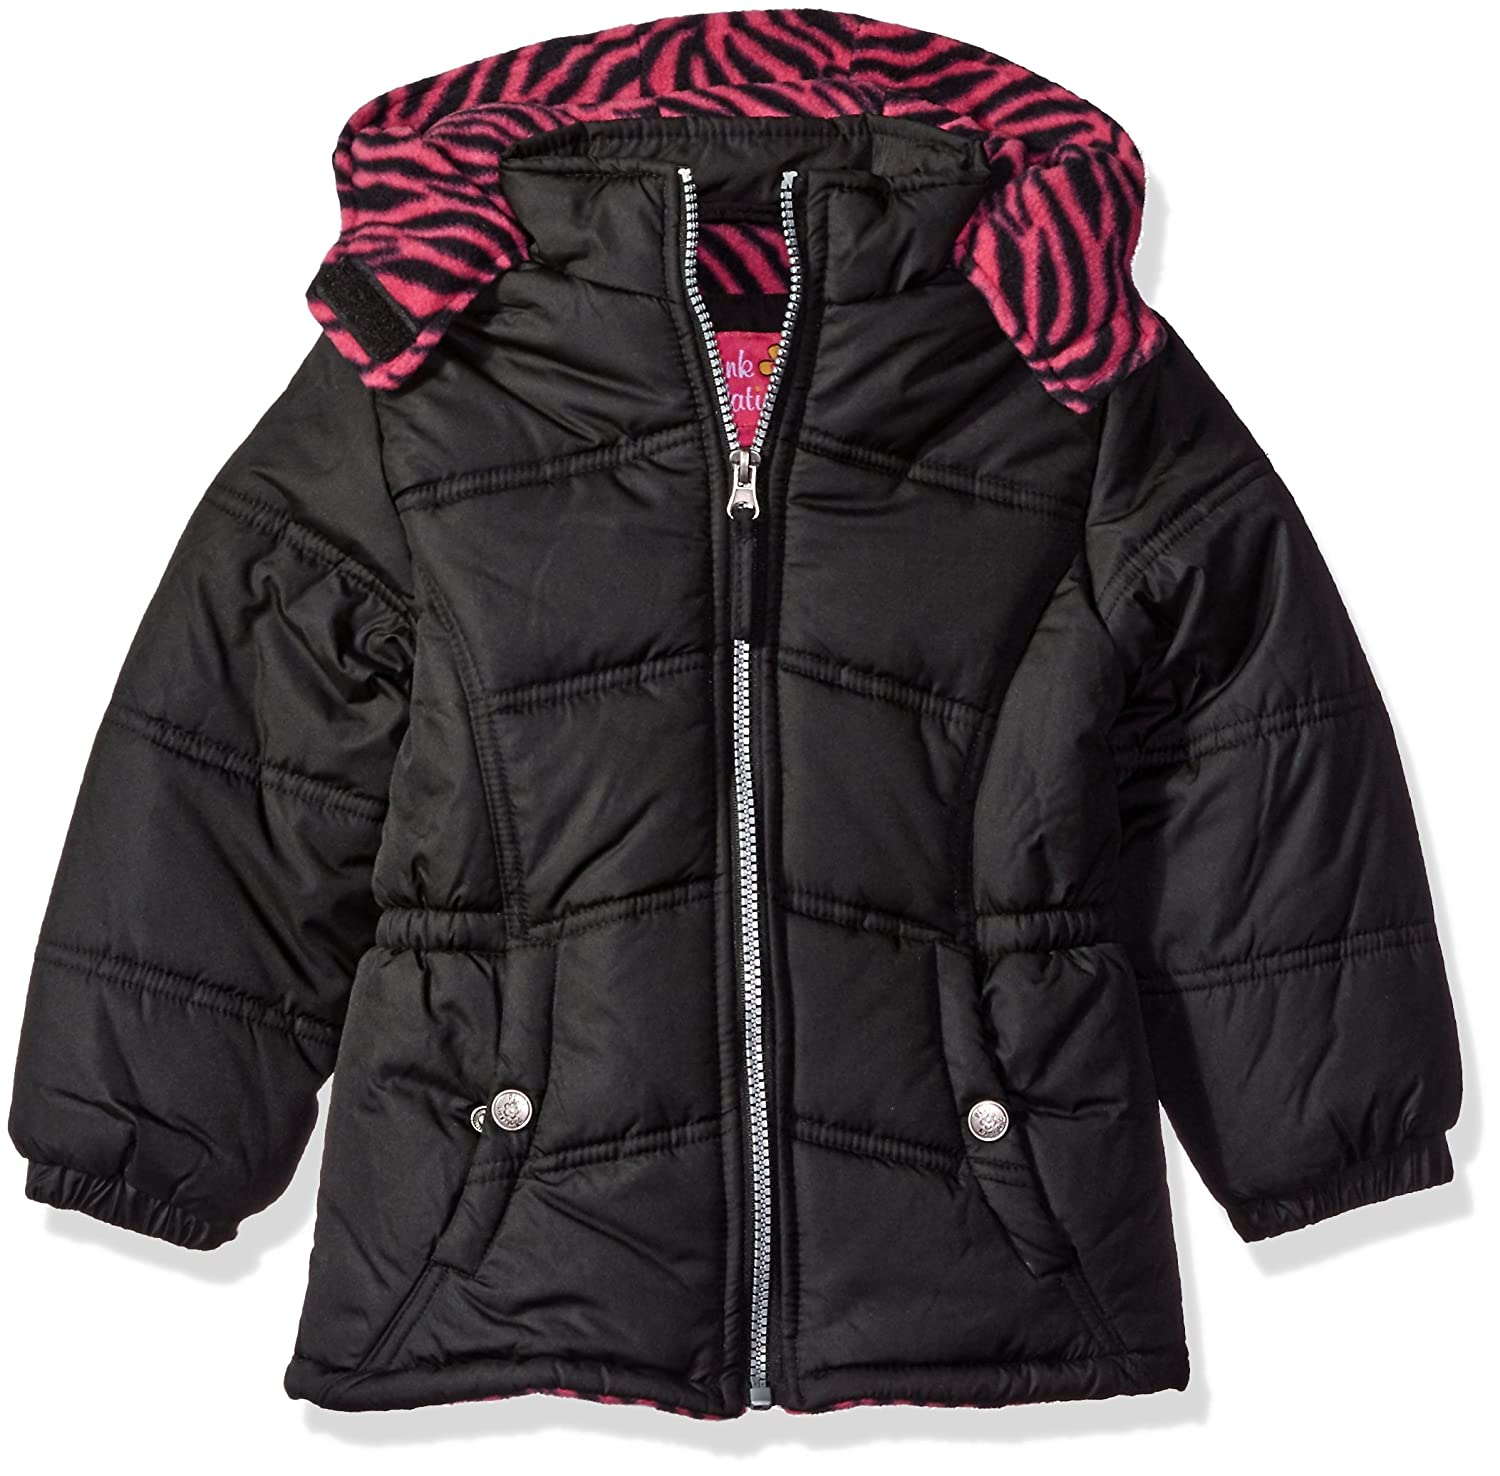 Pink Platinum Girls Puffer Jacket with Zebra Print Lining and Accessories